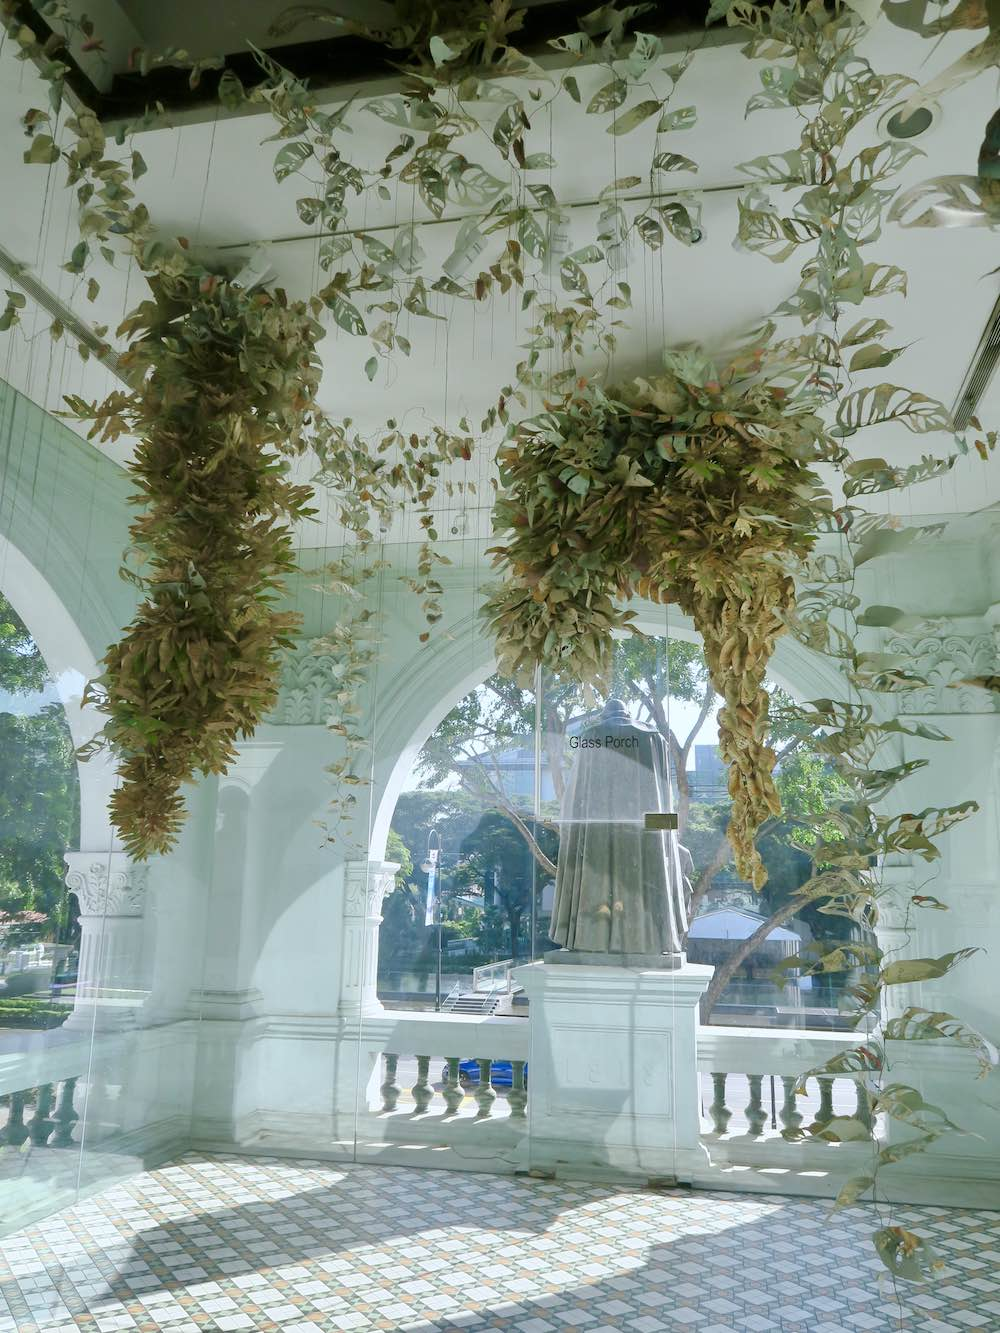 Cartography plants at singapore Biennale 2016 |curlytraveller.com